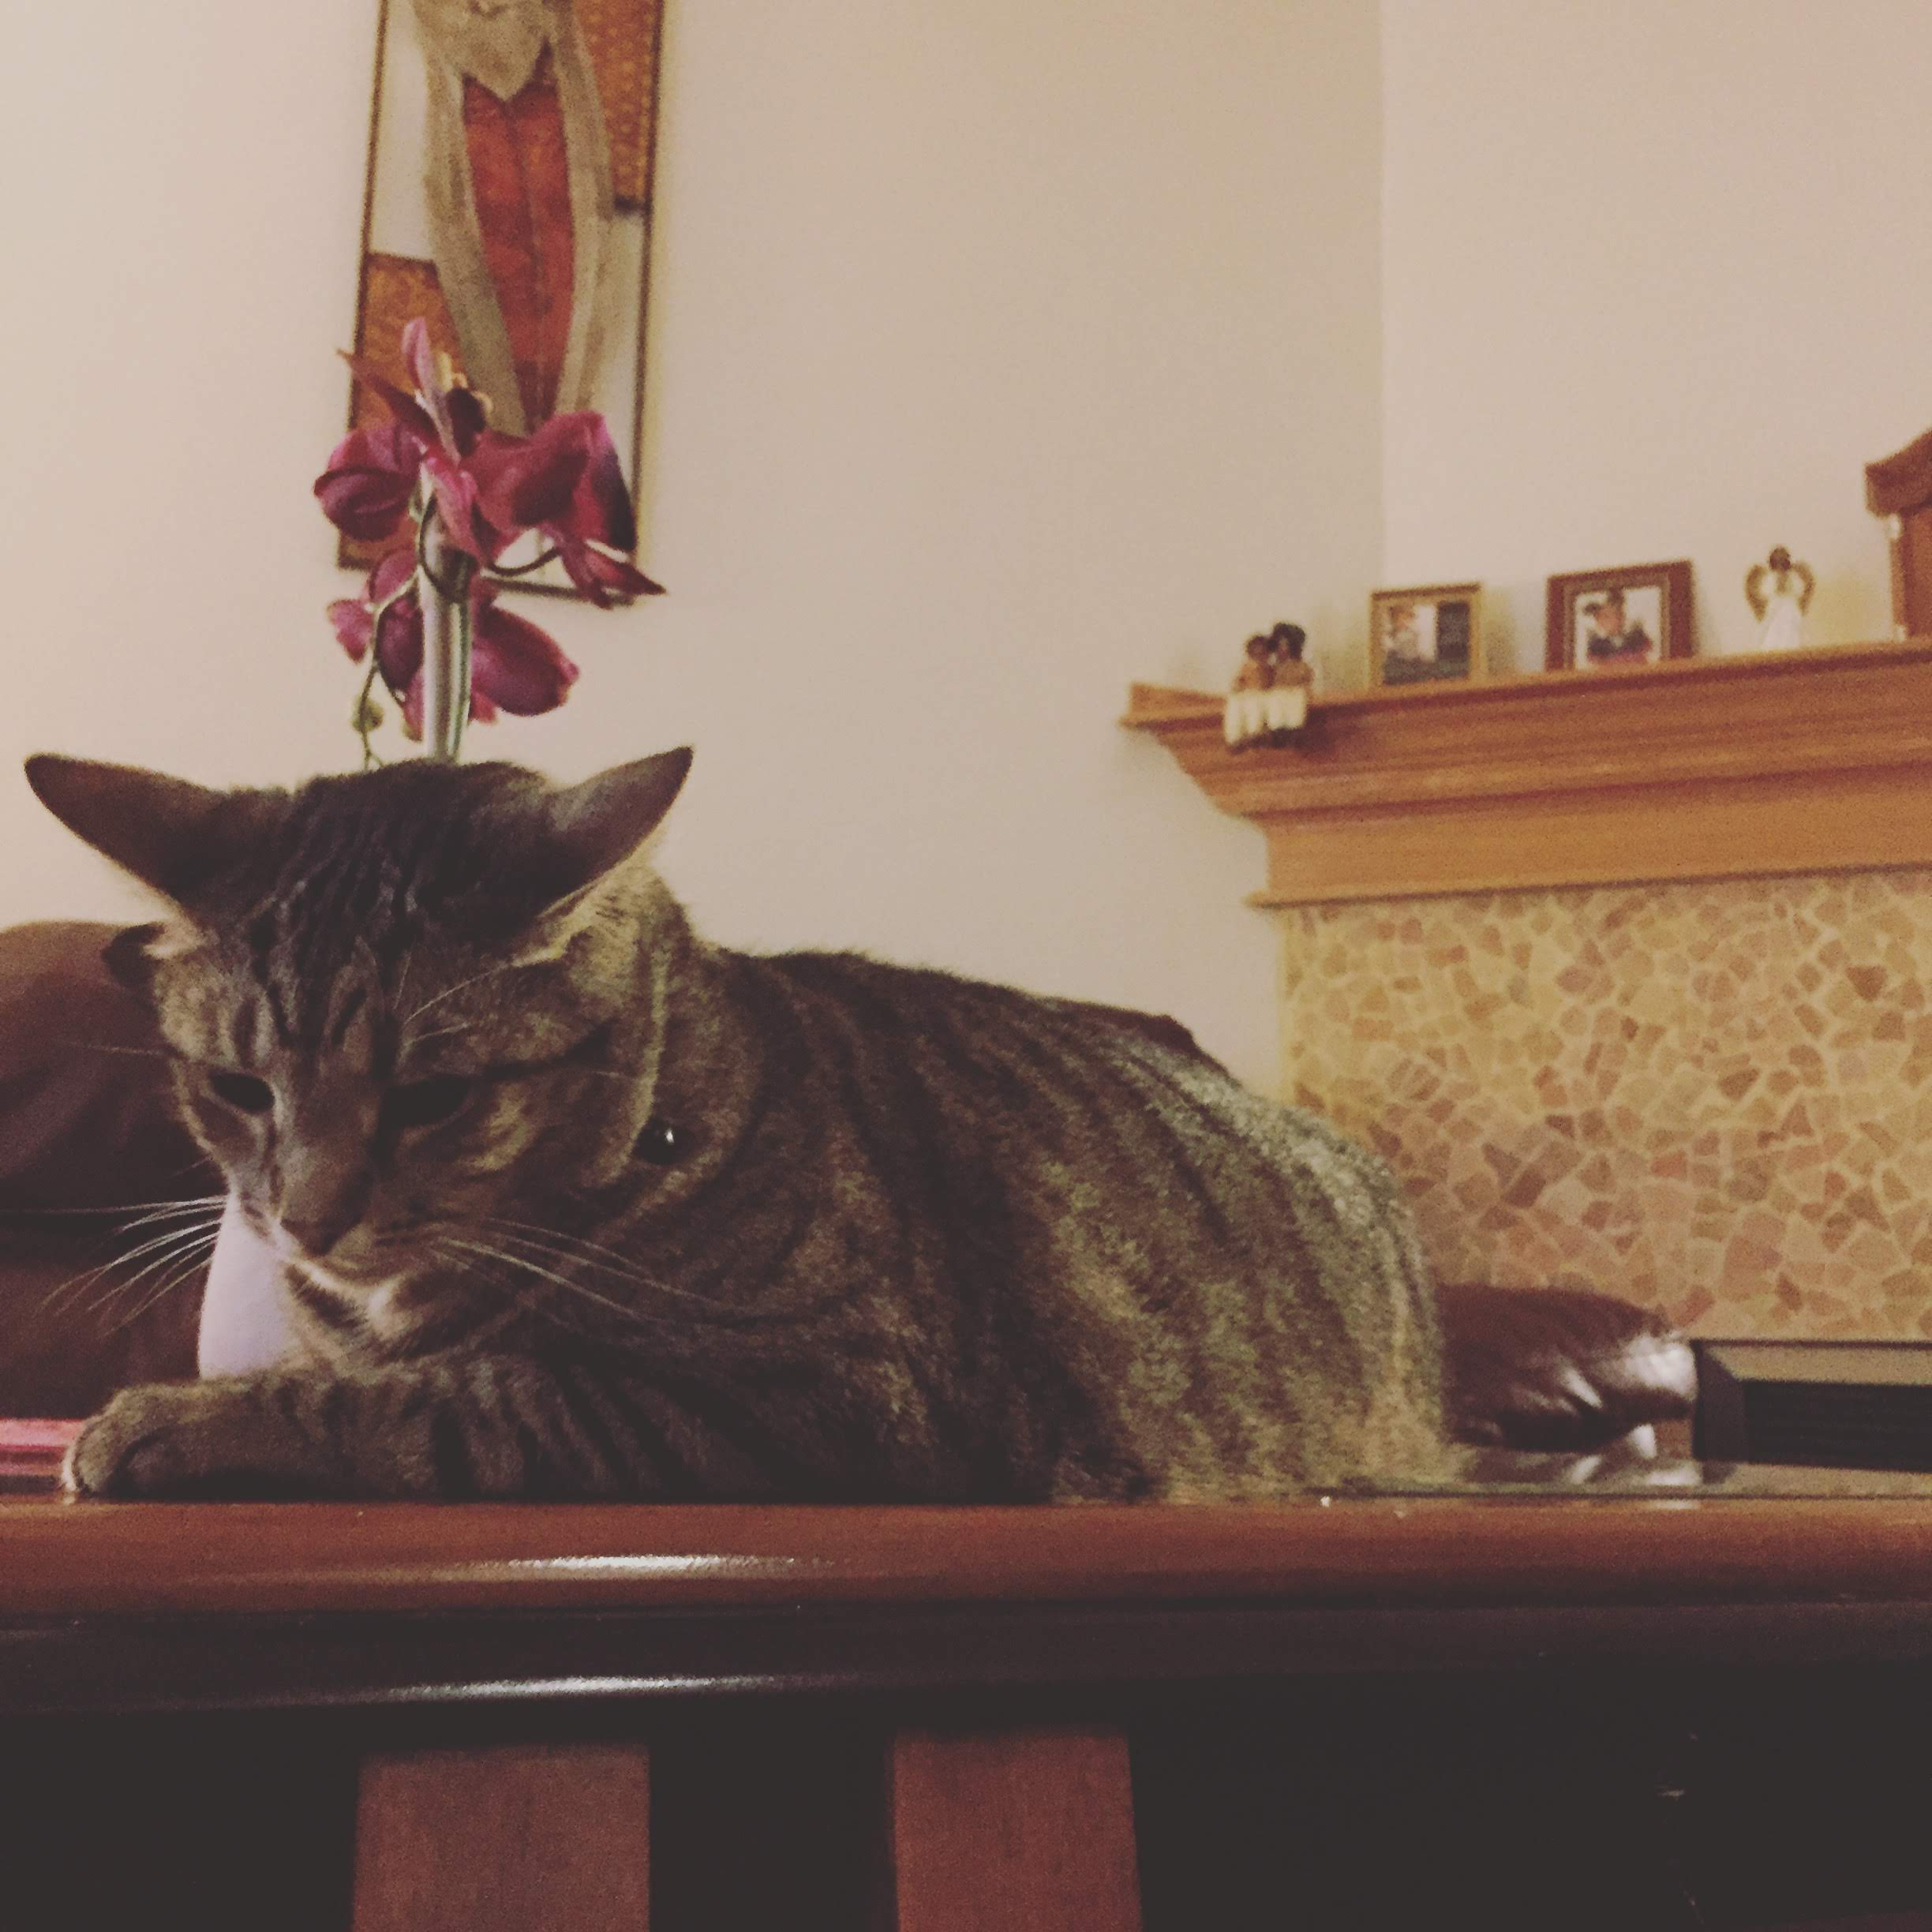 A picture of my grandma's cat the night of her passing. Grandma passed one year ago today. Rest well ancester and thanks for your guidance.